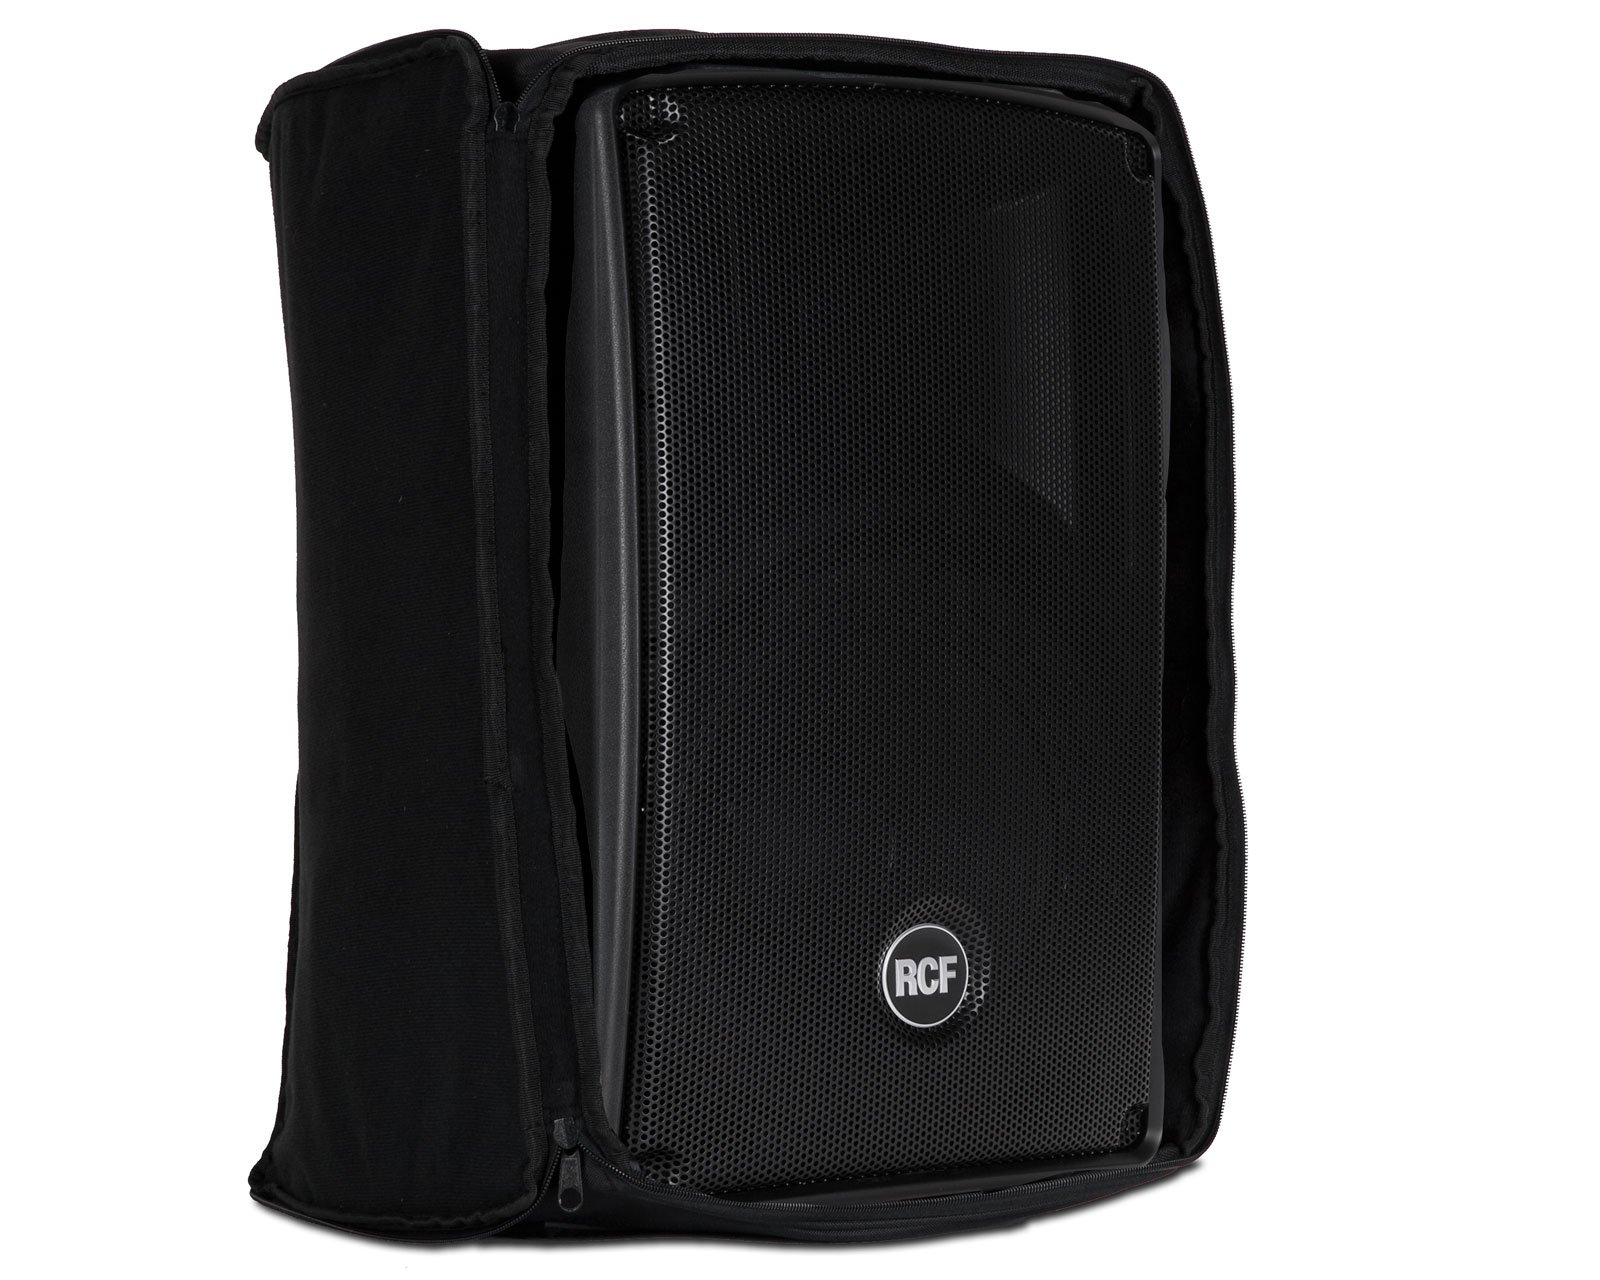 rcf-cover-hd12-fd12-hd12a-bag.jpg